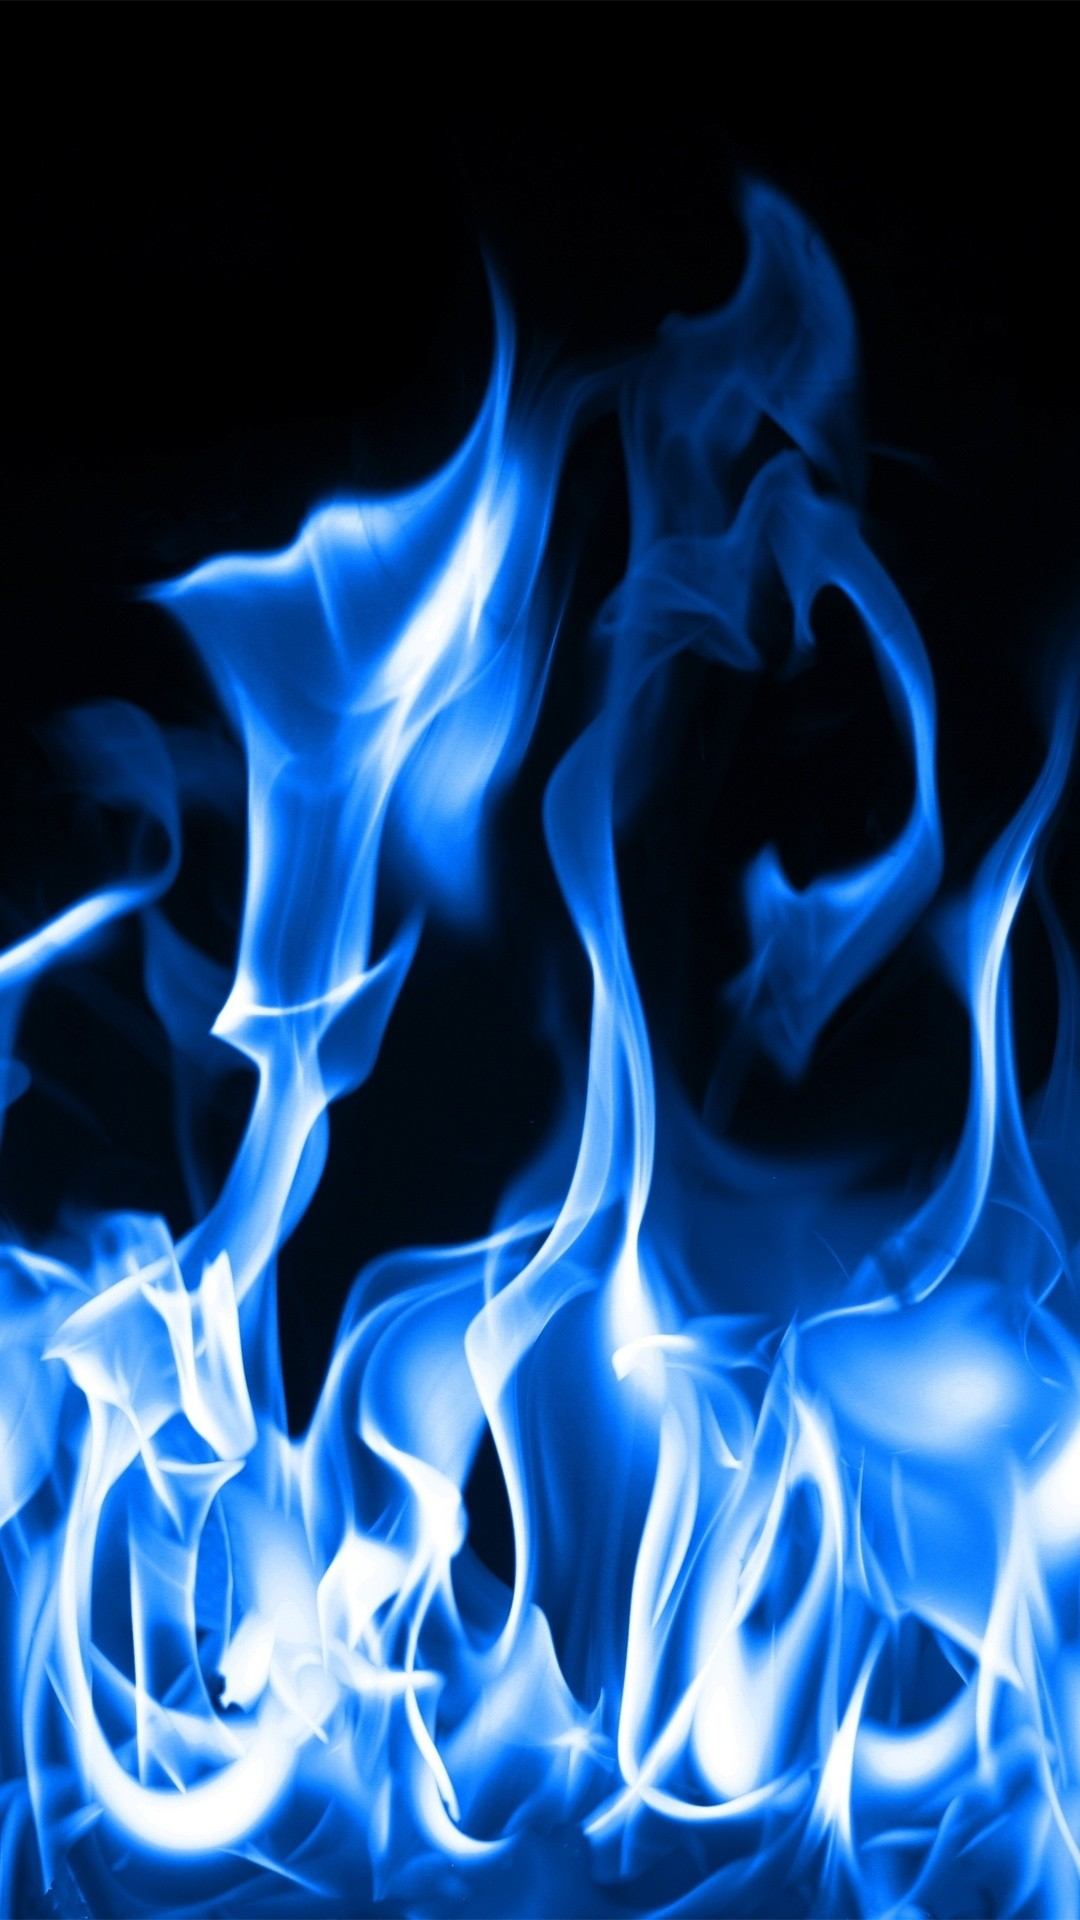 blue fire background 183��